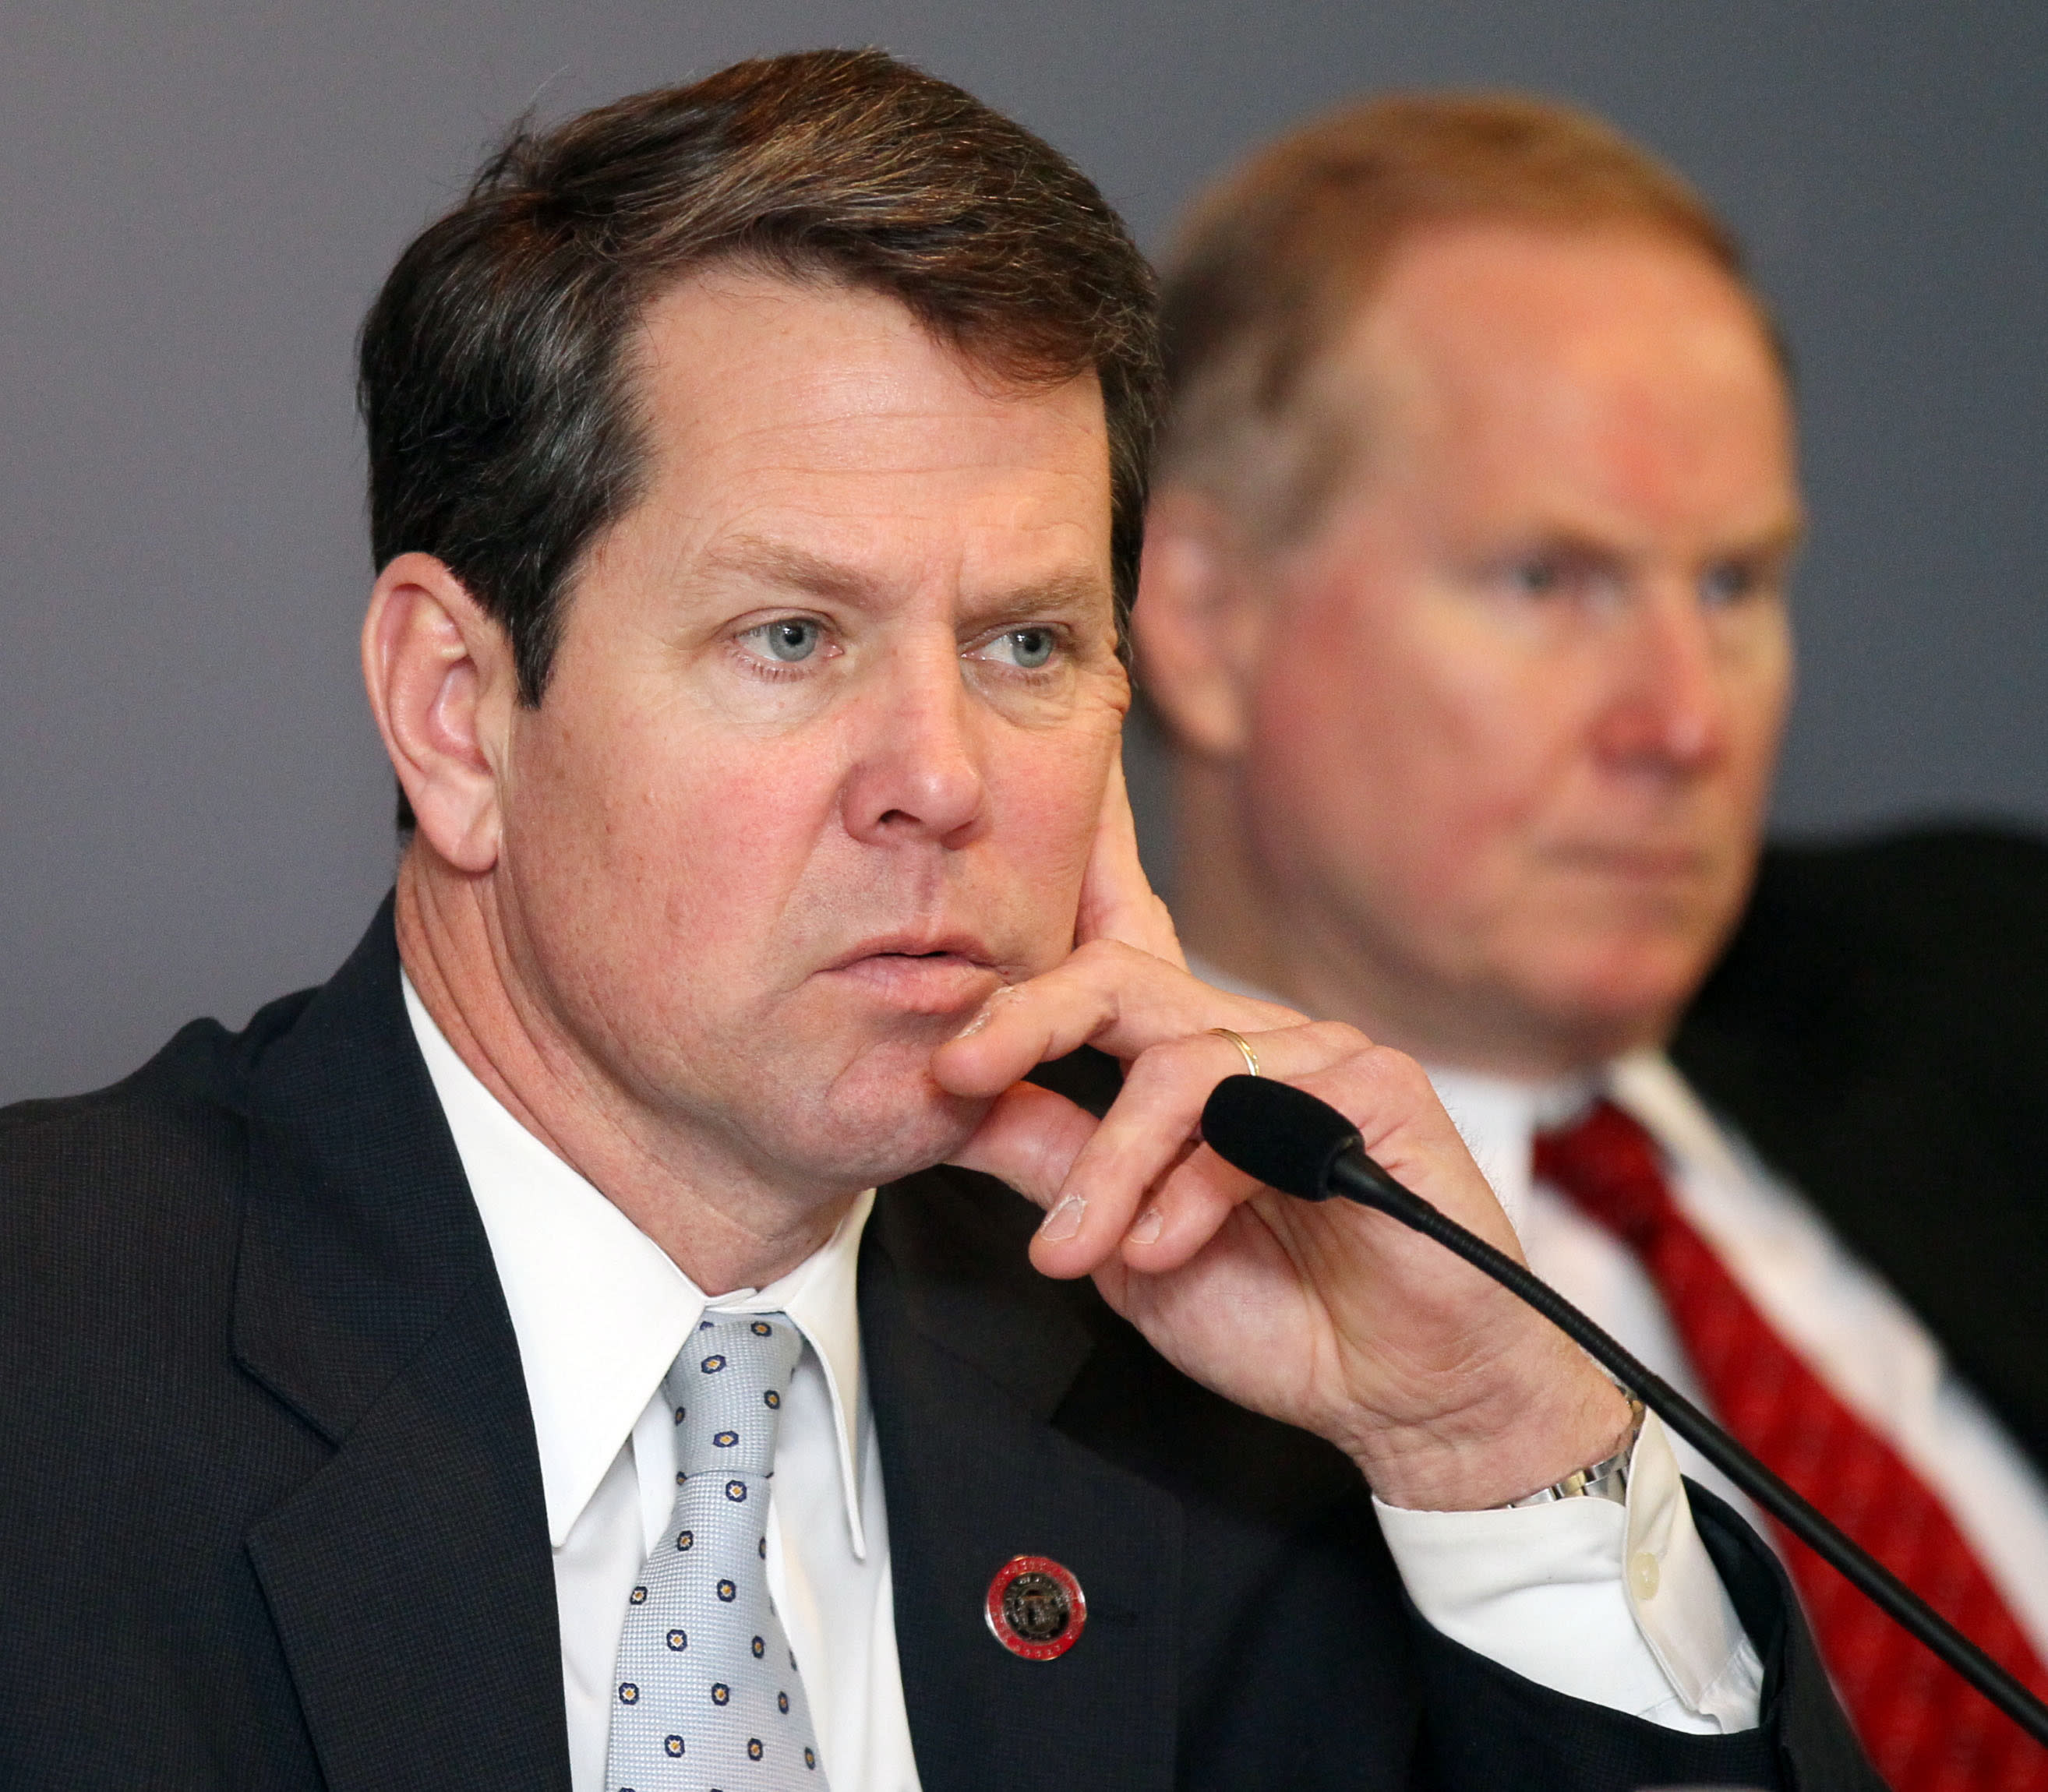 Georgia Secretary of State Brian Kemp, left, and State Election Board member L. Kent Webb listen as investigators grill Fulton County elections officials on problems with last years presidential elections during a hearing at the Sloppy Floyd building in Atlanta on Thursday, Jan. 31, 2013. A statewide spotlight will be cast on Fulton County's incompetence Thursday when the State Election Board holds a hearing, somewhere at the state Capitol complex, on recent elections problems. Secretary of State Brian Kemp fast-tracked investigations into more than 100 complaints about Fulton's polling problems during last year's presidential contest. The election board, which he chairs, will decide whether to reprimand the county or send cases on to the state Attorney General for possible prosecution. (Phil Skinner/Atlanta Journal-Constitution via AP)